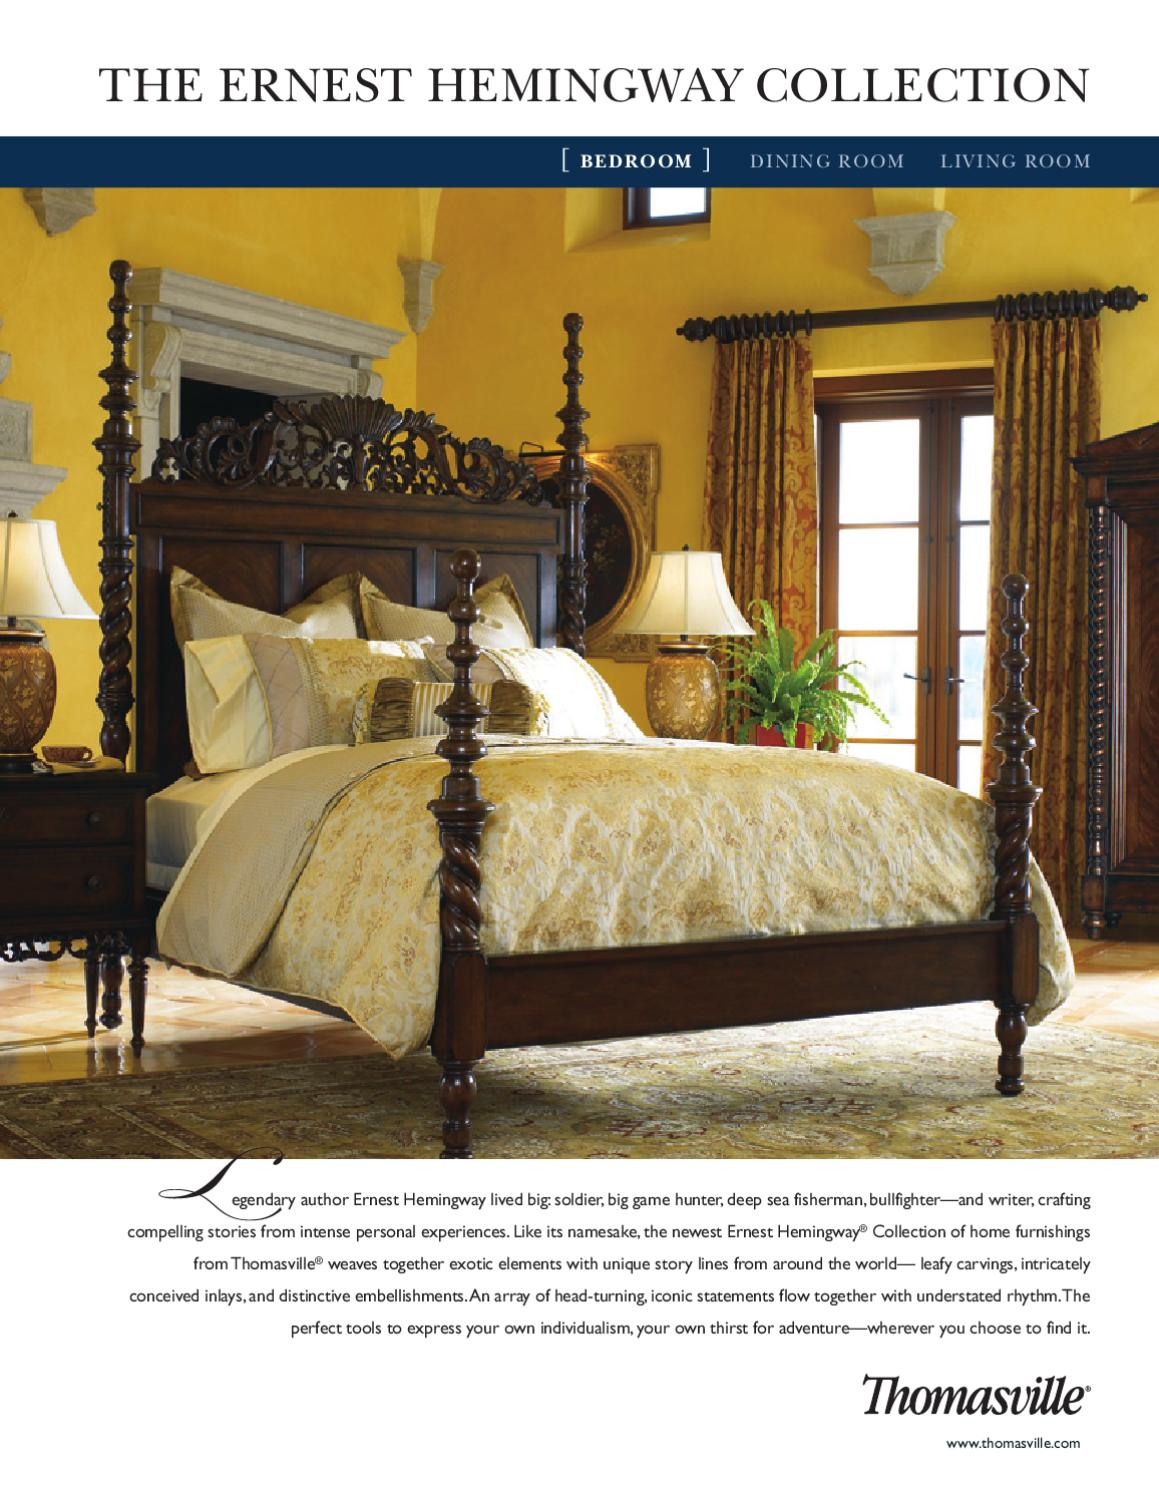 Discontinued Thomasville Furniture Collections : discontinued, thomasville, furniture, collections, Thomasville-, Ernest, Hemingway, Collection, (Bedroom), Cadieux, Company, Issuu